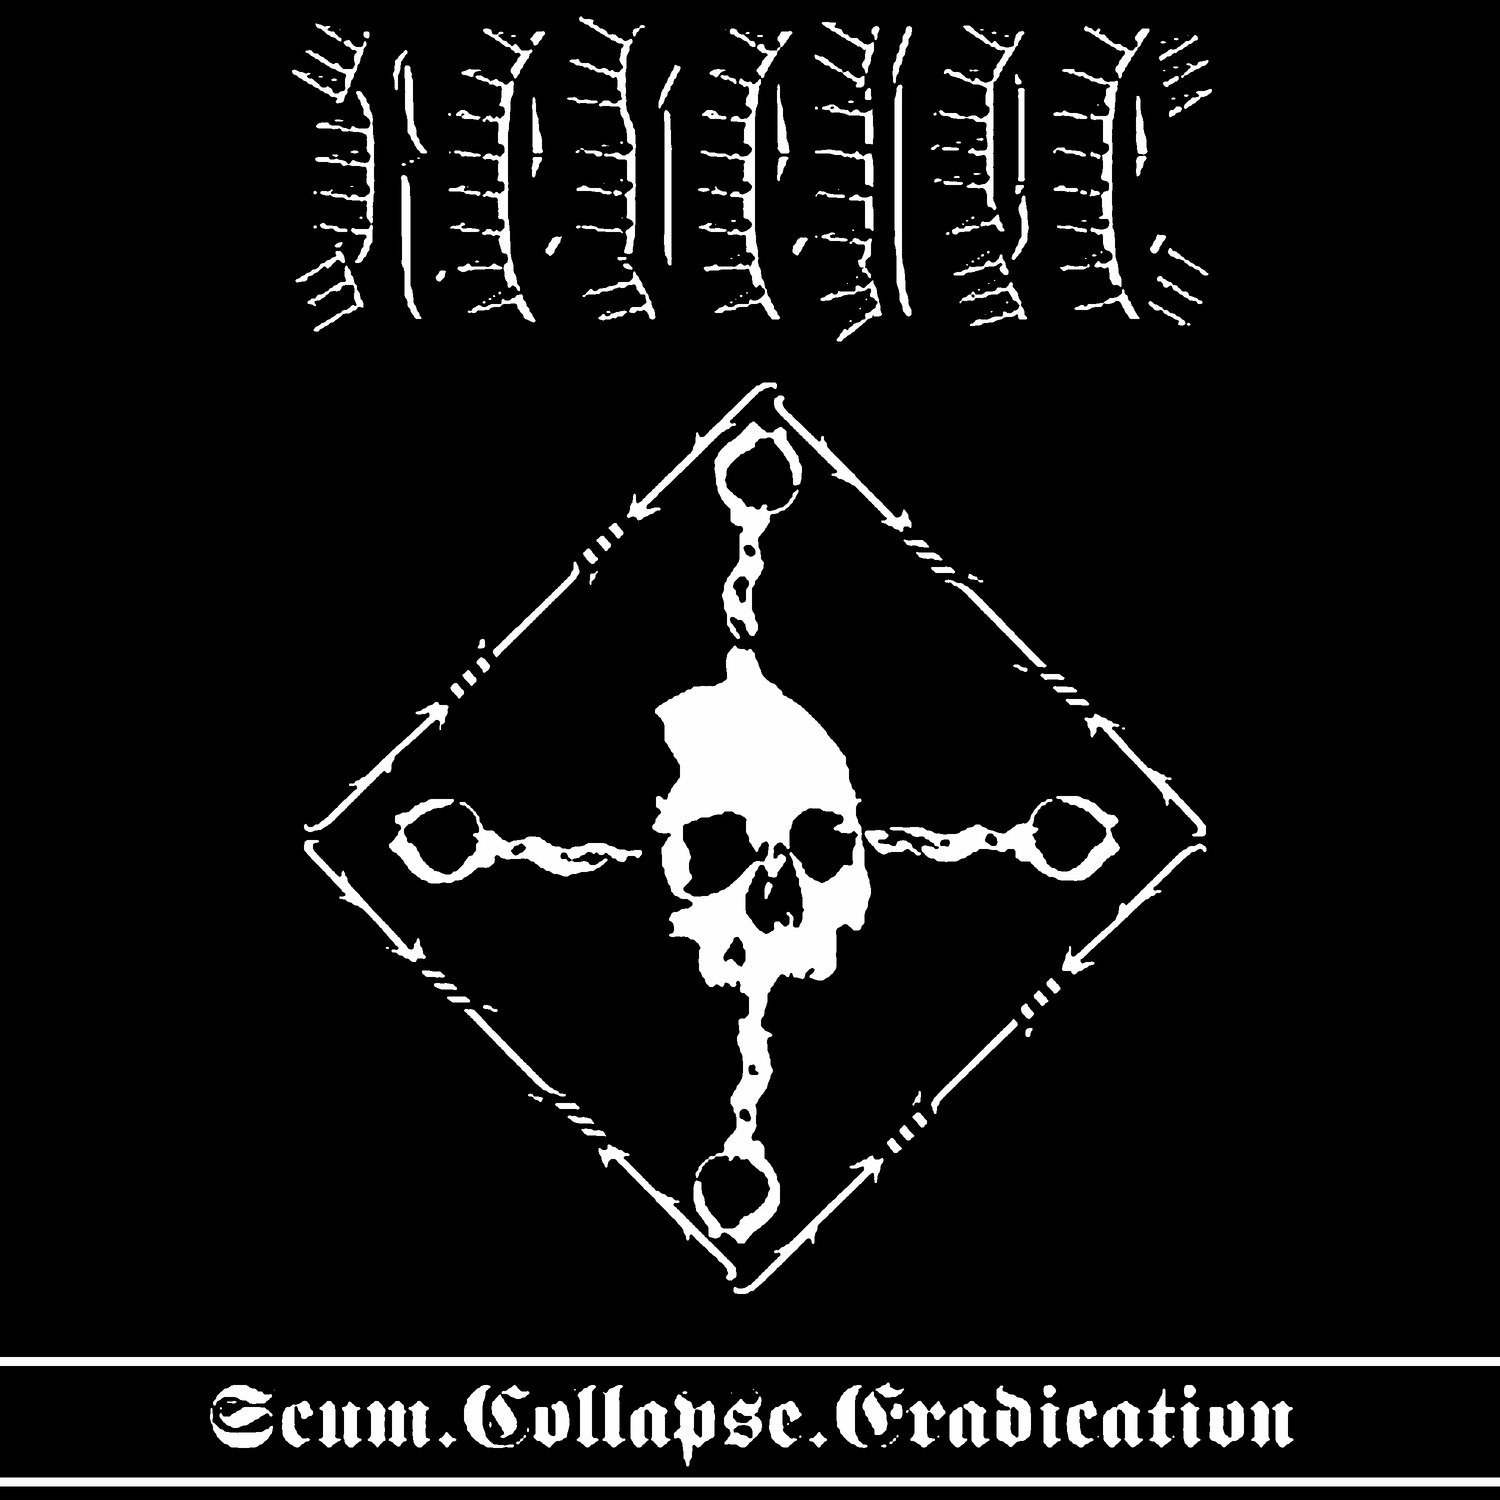 Review for Revenge (CAN) - Scum.Collapse.Eradication